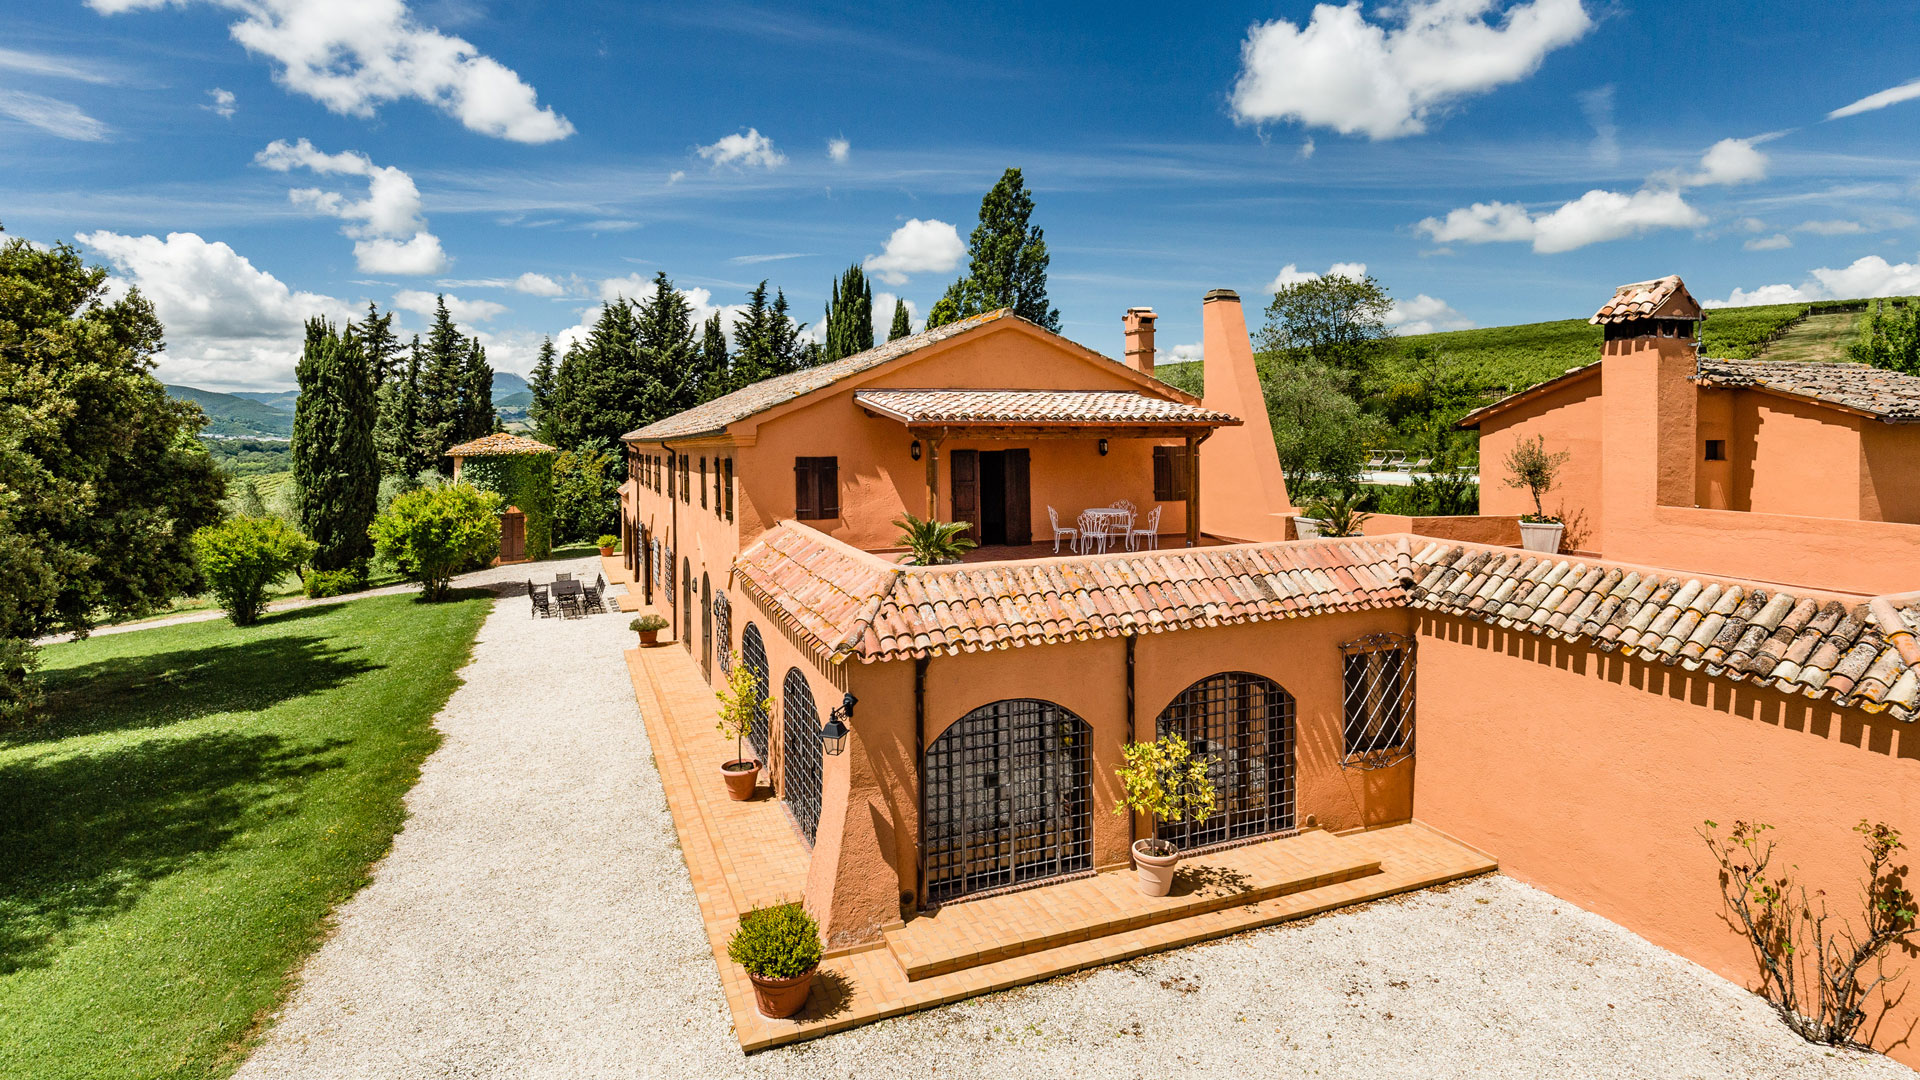 Villa Uliveto - Private Homes